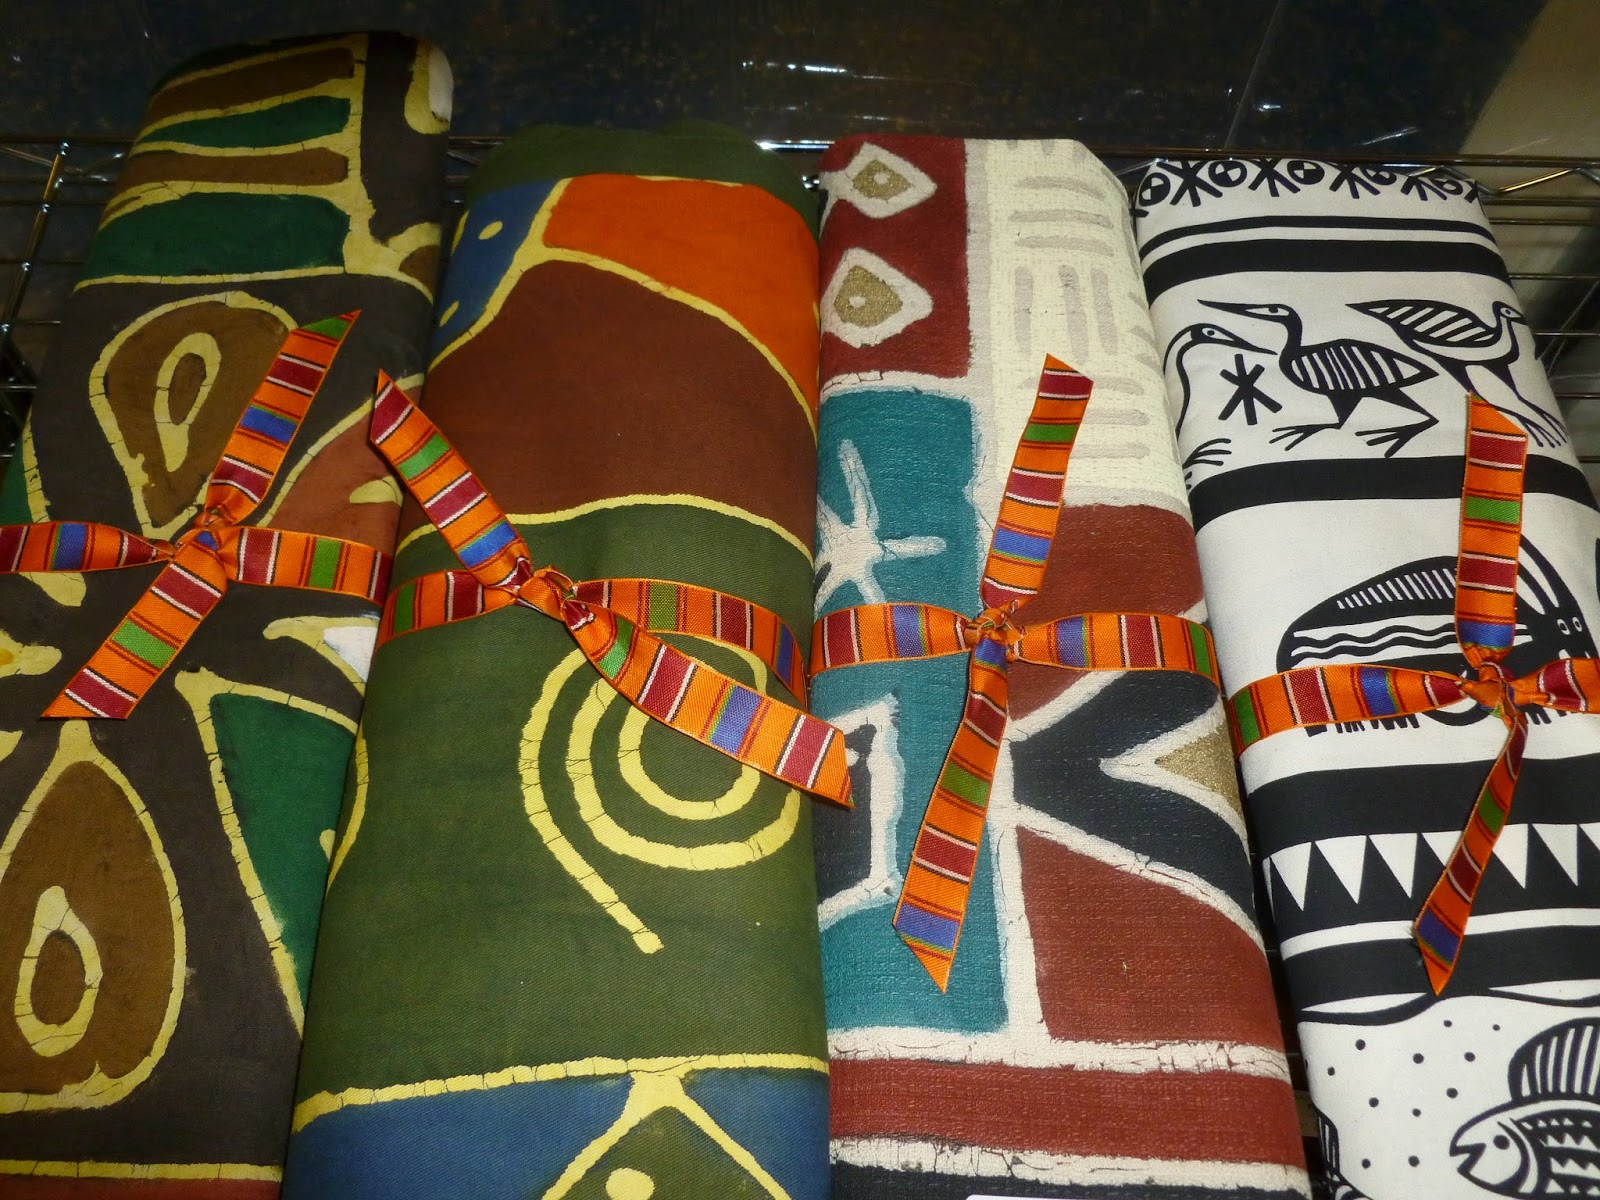 High Quality South African Hand Painted Tablecloths And Wall Hangings.